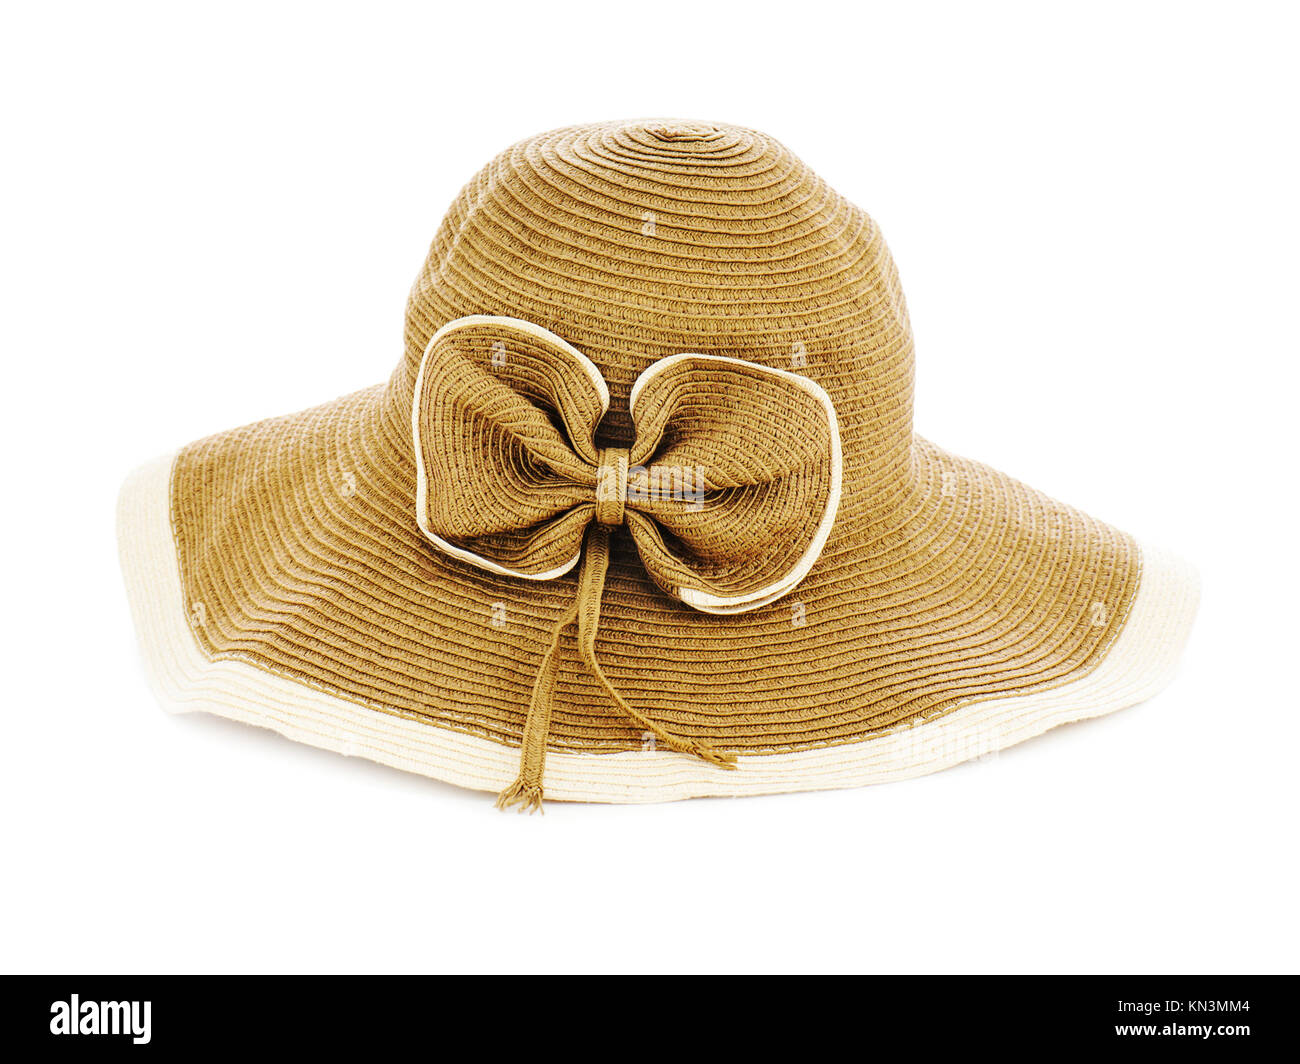 Summer hat isolated on white background. - Stock Image